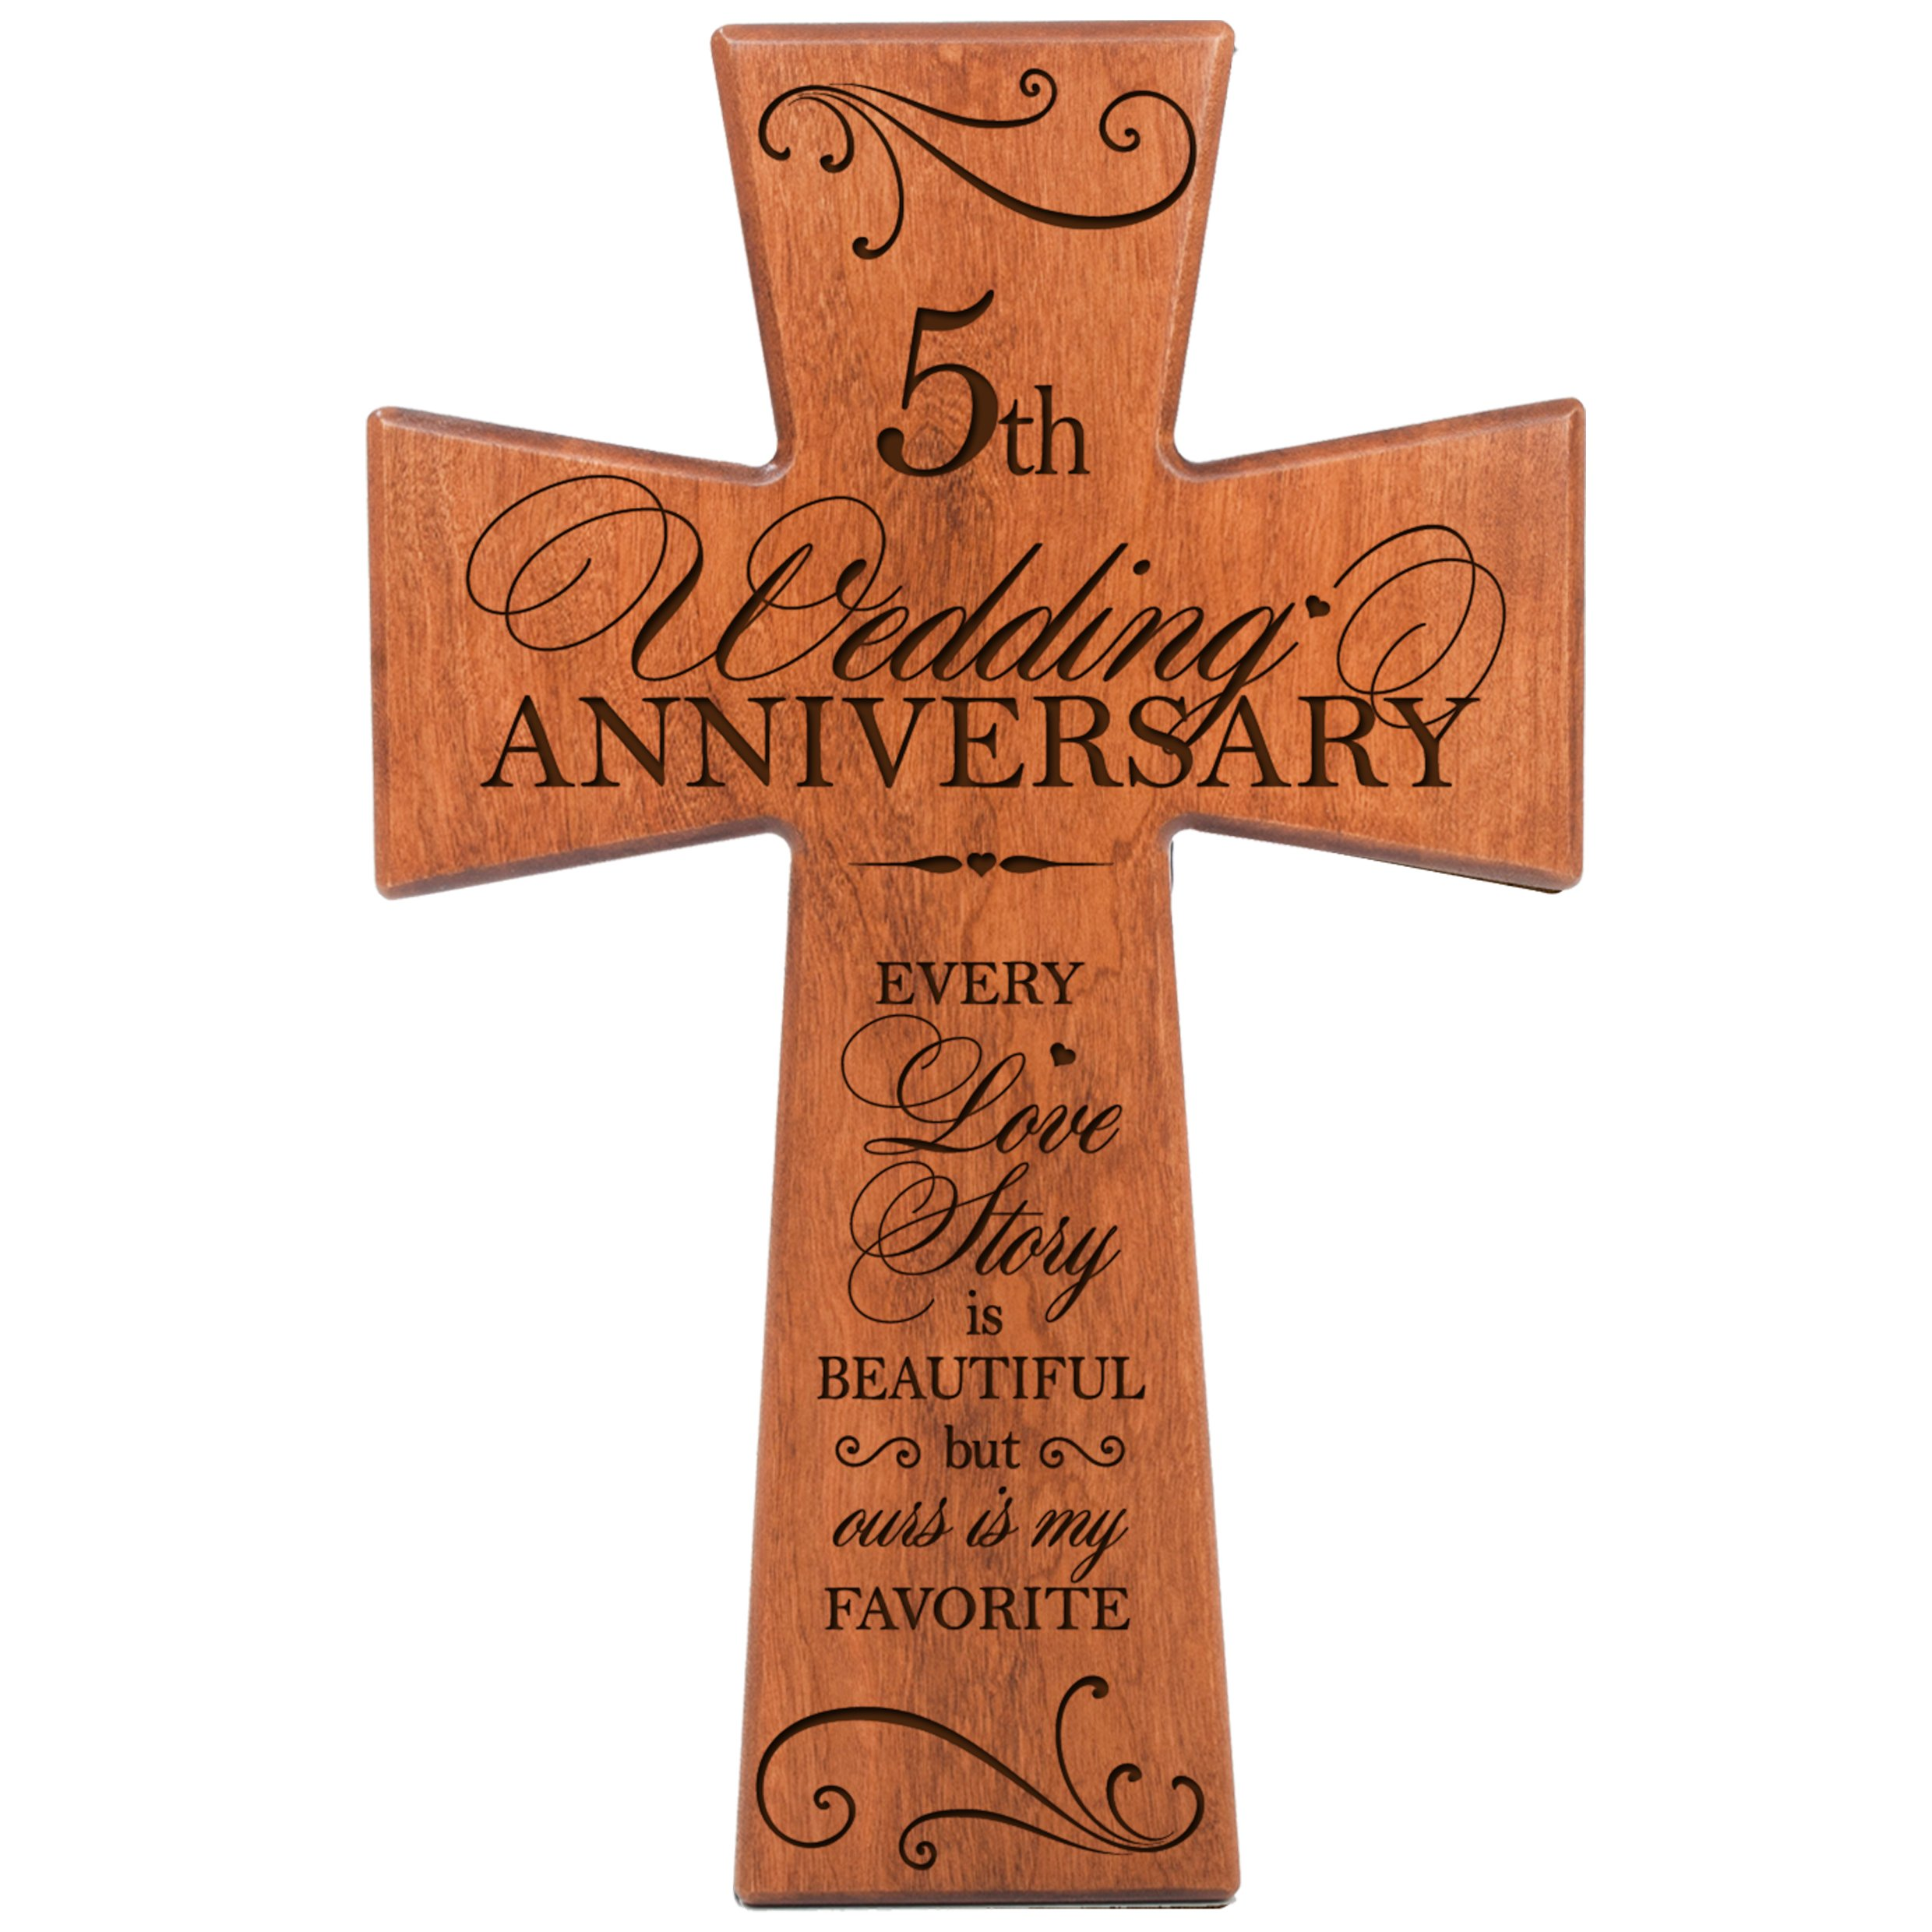 Fifth Wedding Anniversary Gift Ideas For Him: Buy 5th Wedding Anniversary Gift For Couple Cherry Wood